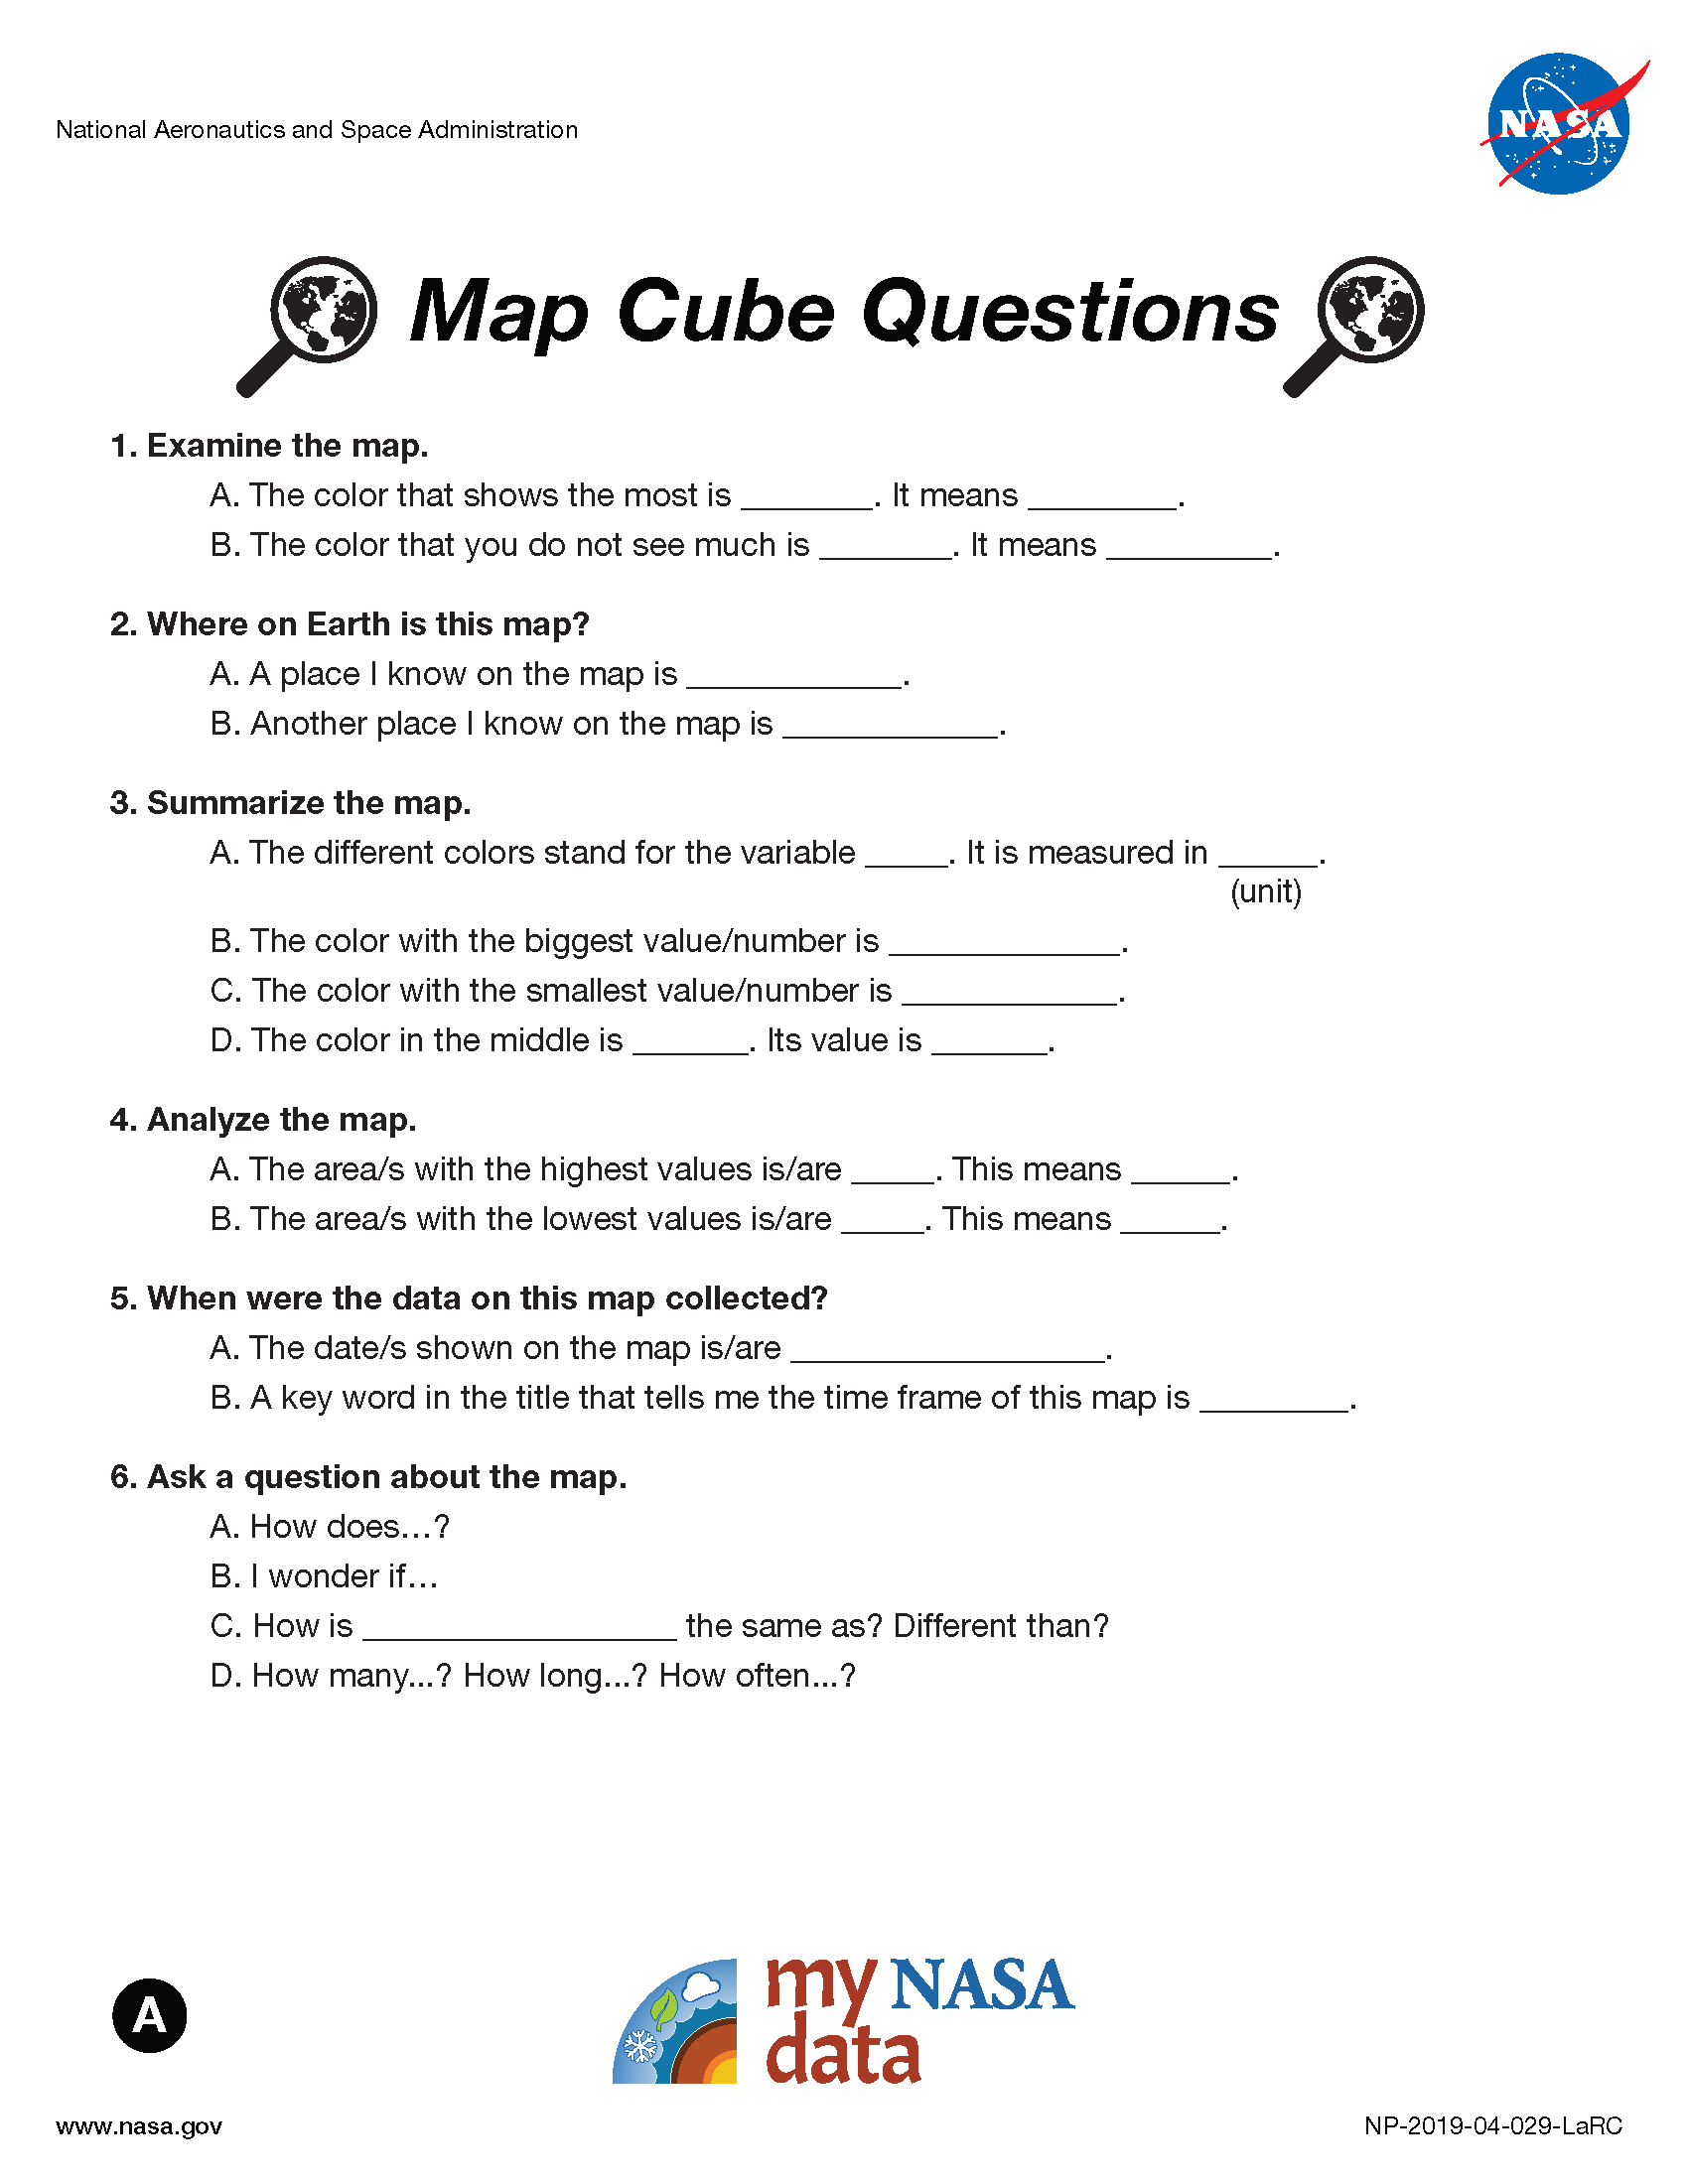 My NASA Data - Data Literacy Cubes - Map Cube Questions - Beginner